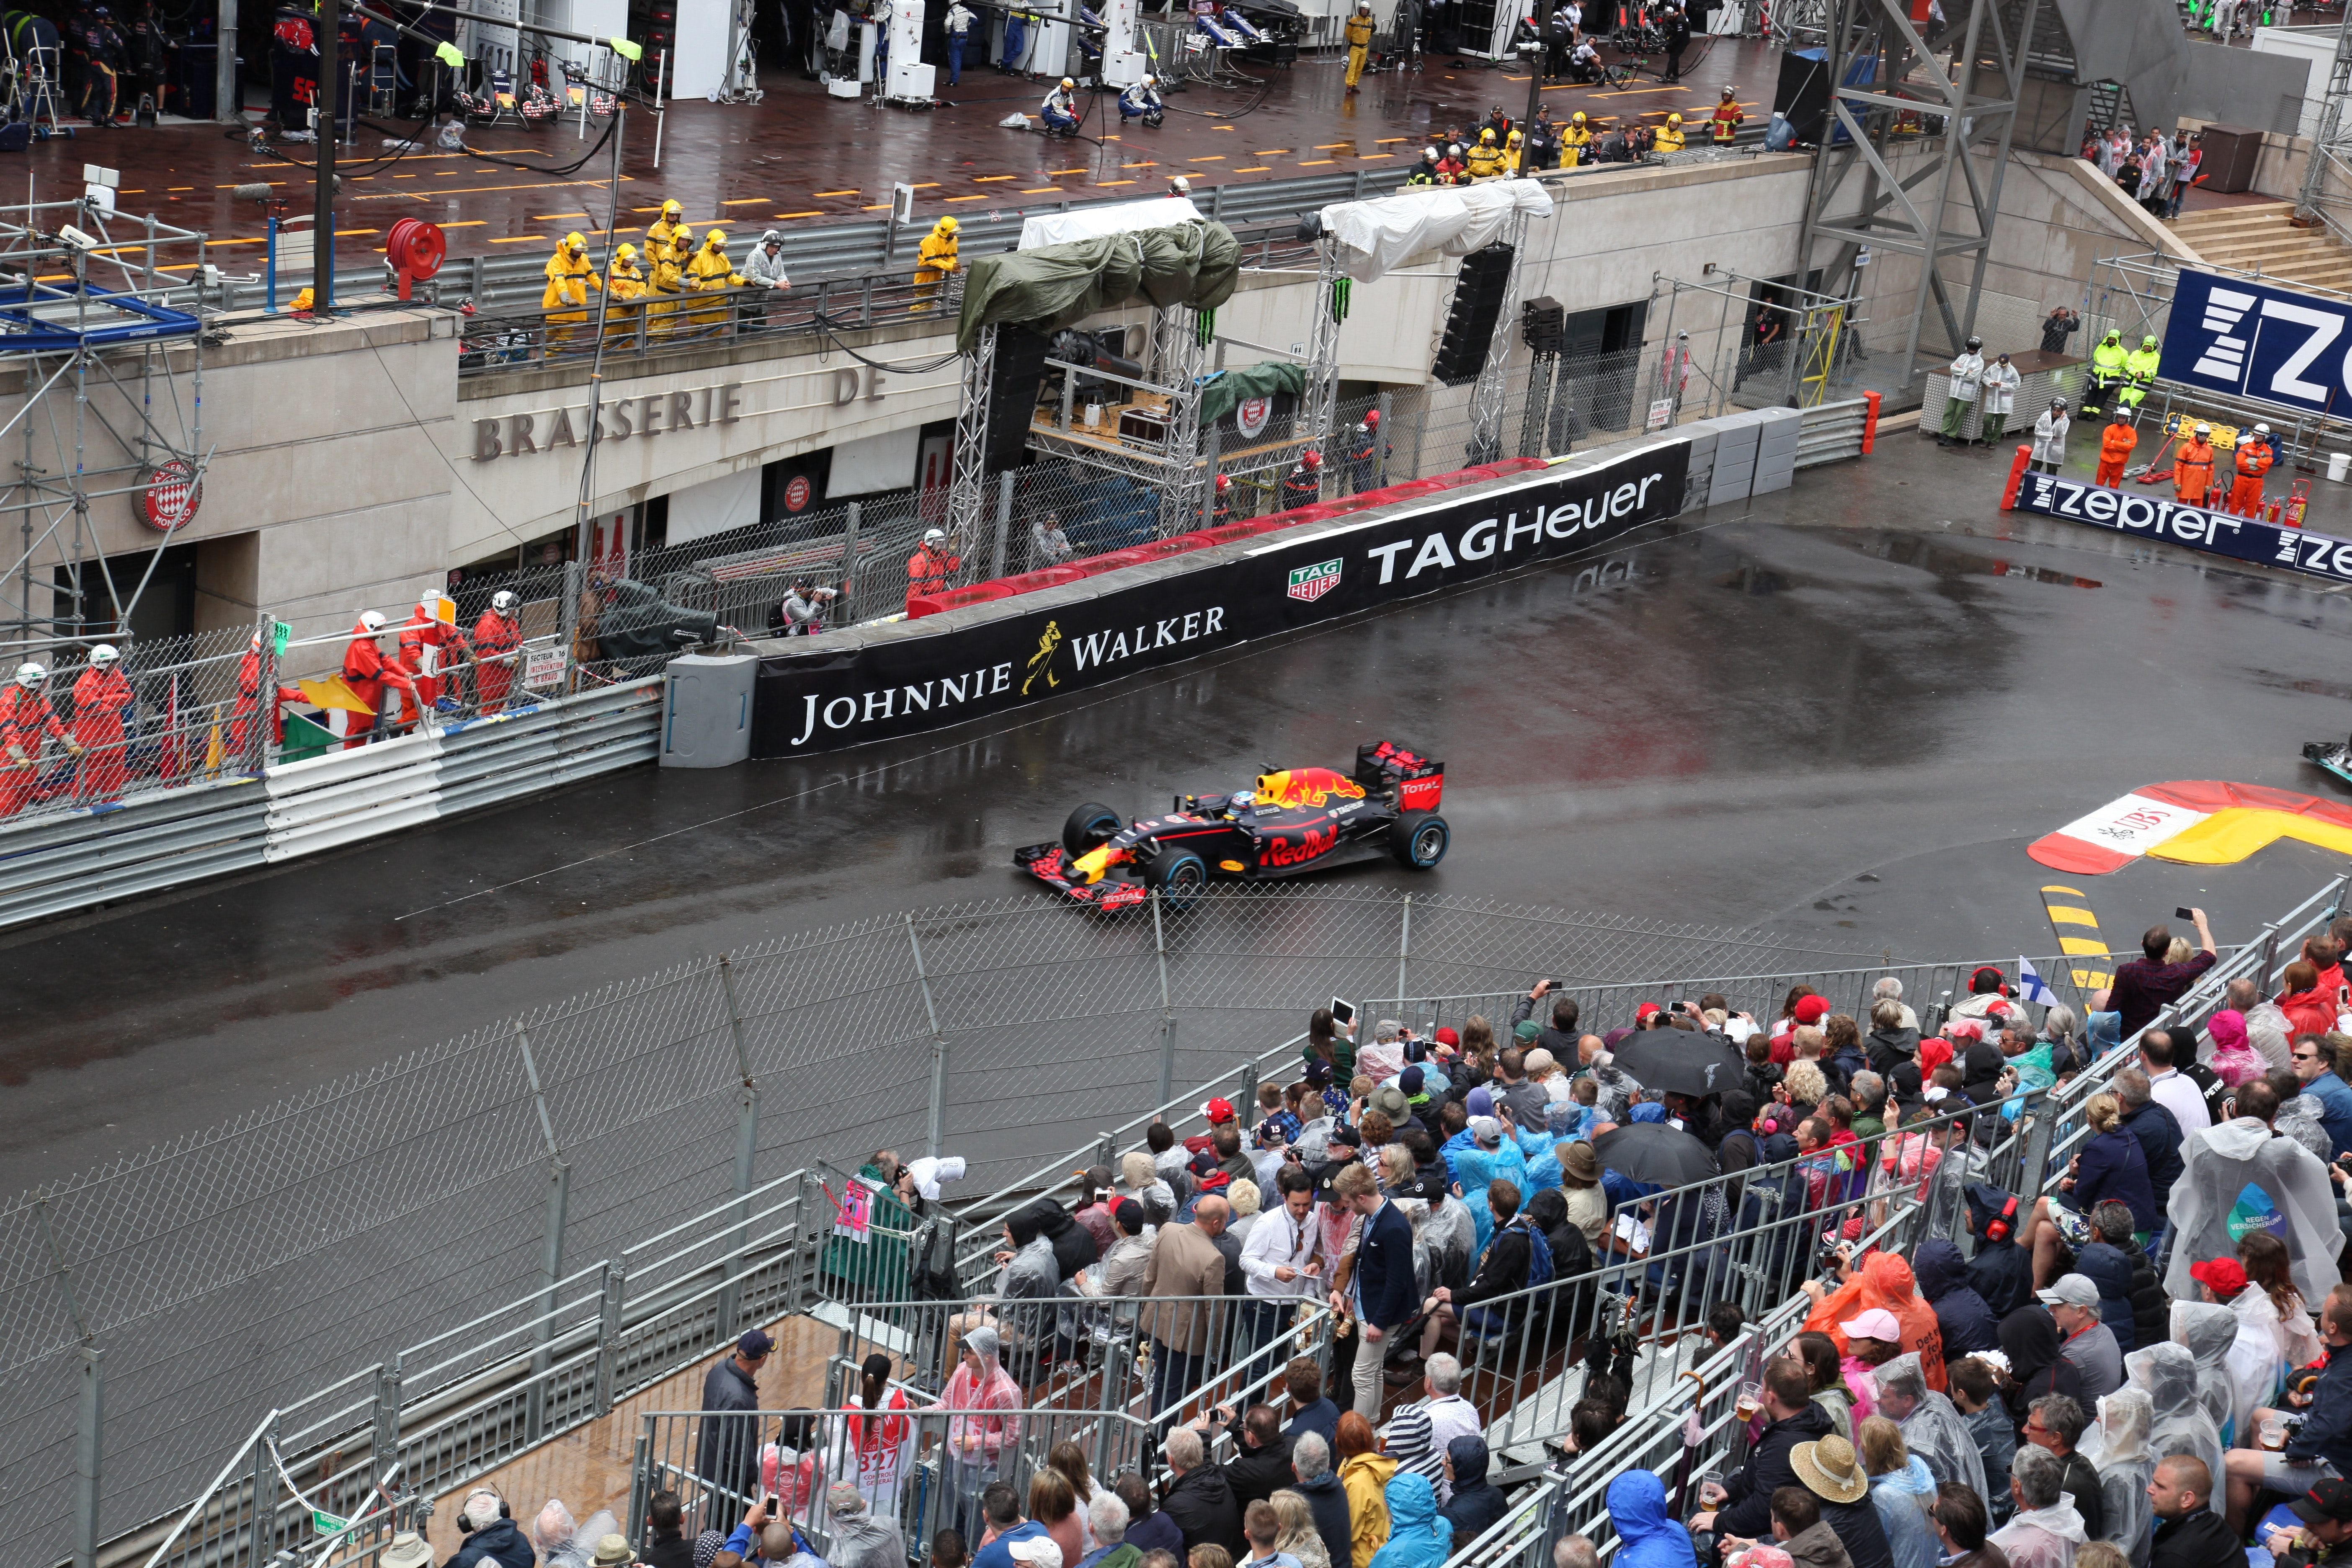 Photo Report: Behind The Scenes At The Monaco Grand Prix 2016 With TAG Heuer CEO Jean-Claude Biver Photo Report: Behind The Scenes At The Monaco Grand Prix 2016 With TAG Heuer CEO Jean-Claude Biver IMG 0909